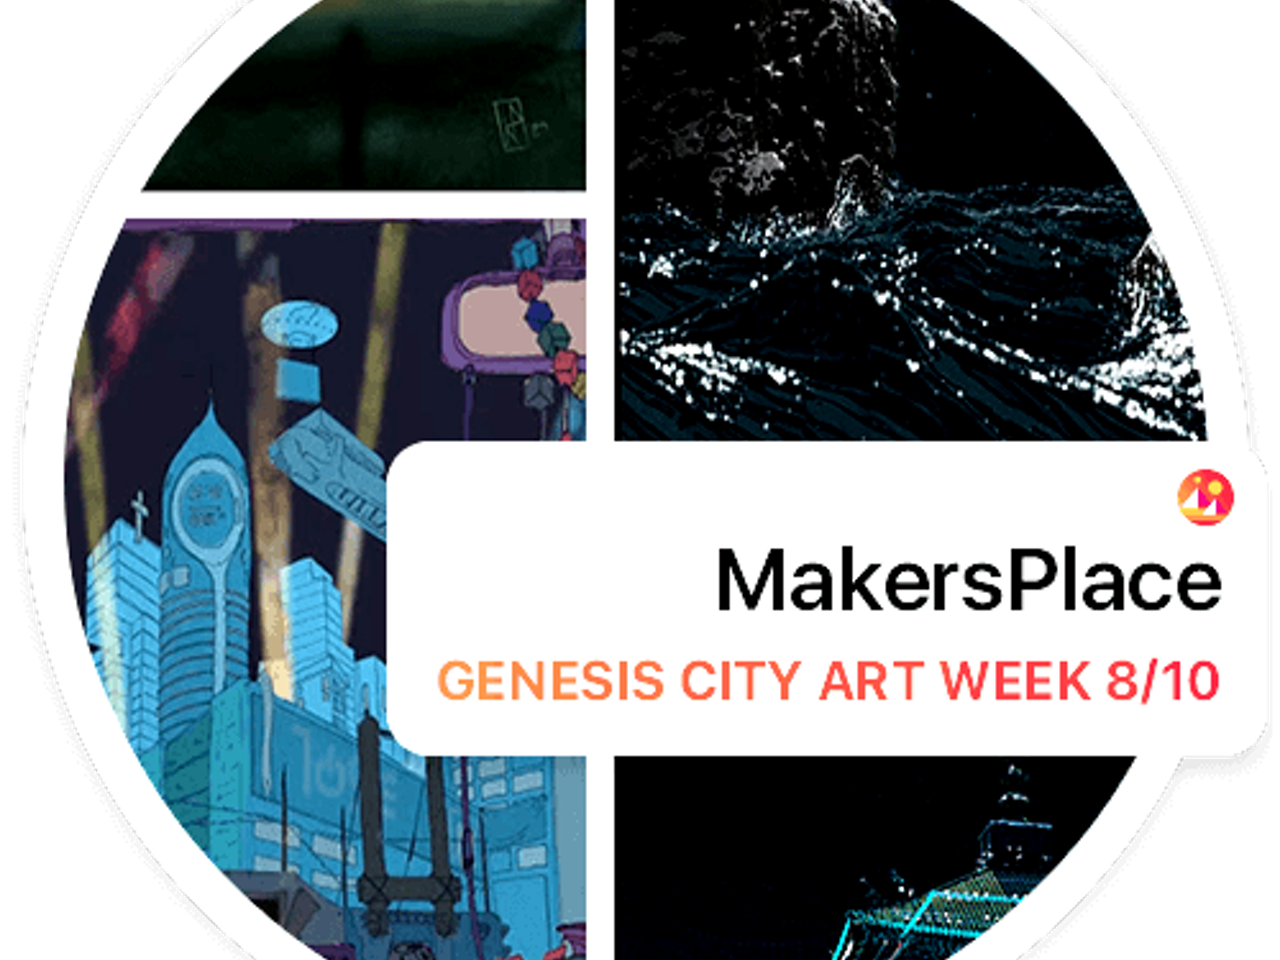 Decentraland - MakersPlace Gallery Opening